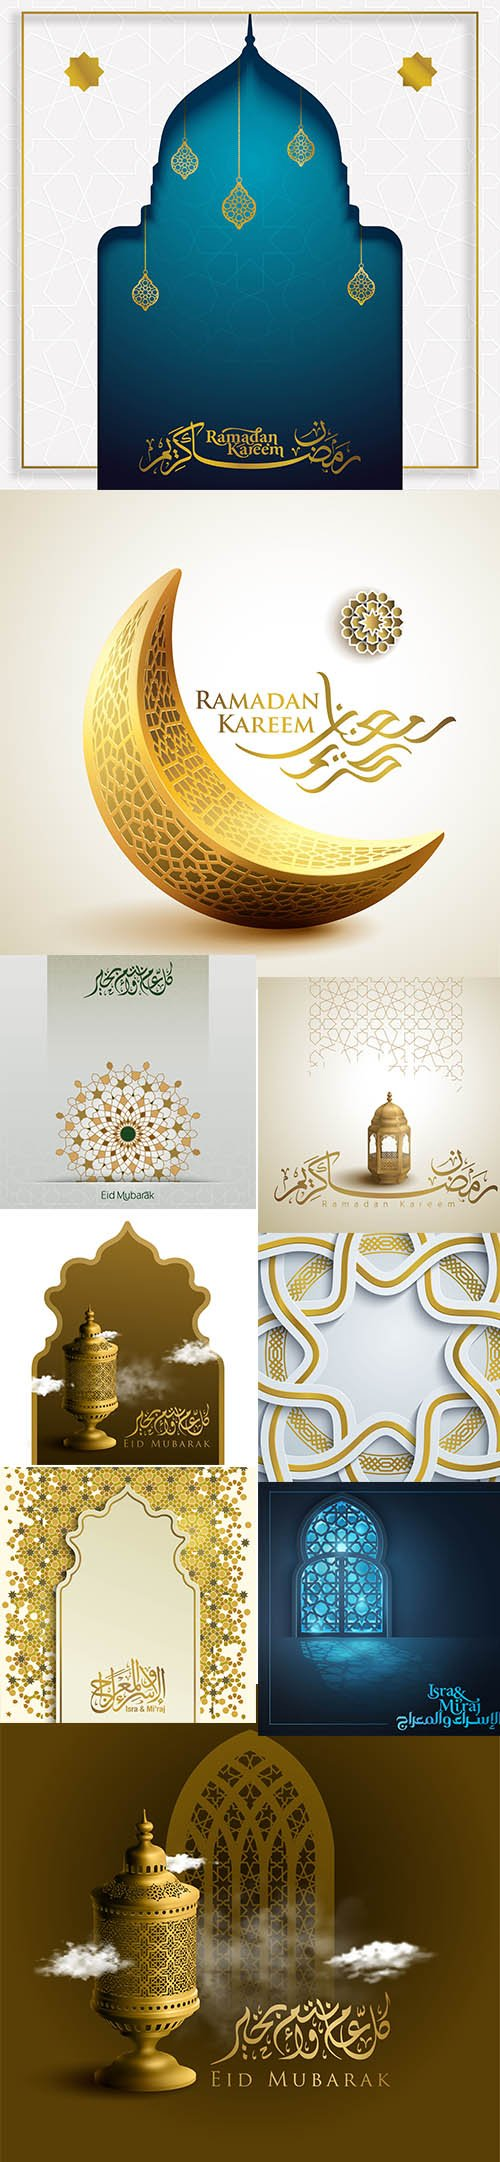 Arabic Calligraphy Illustrations